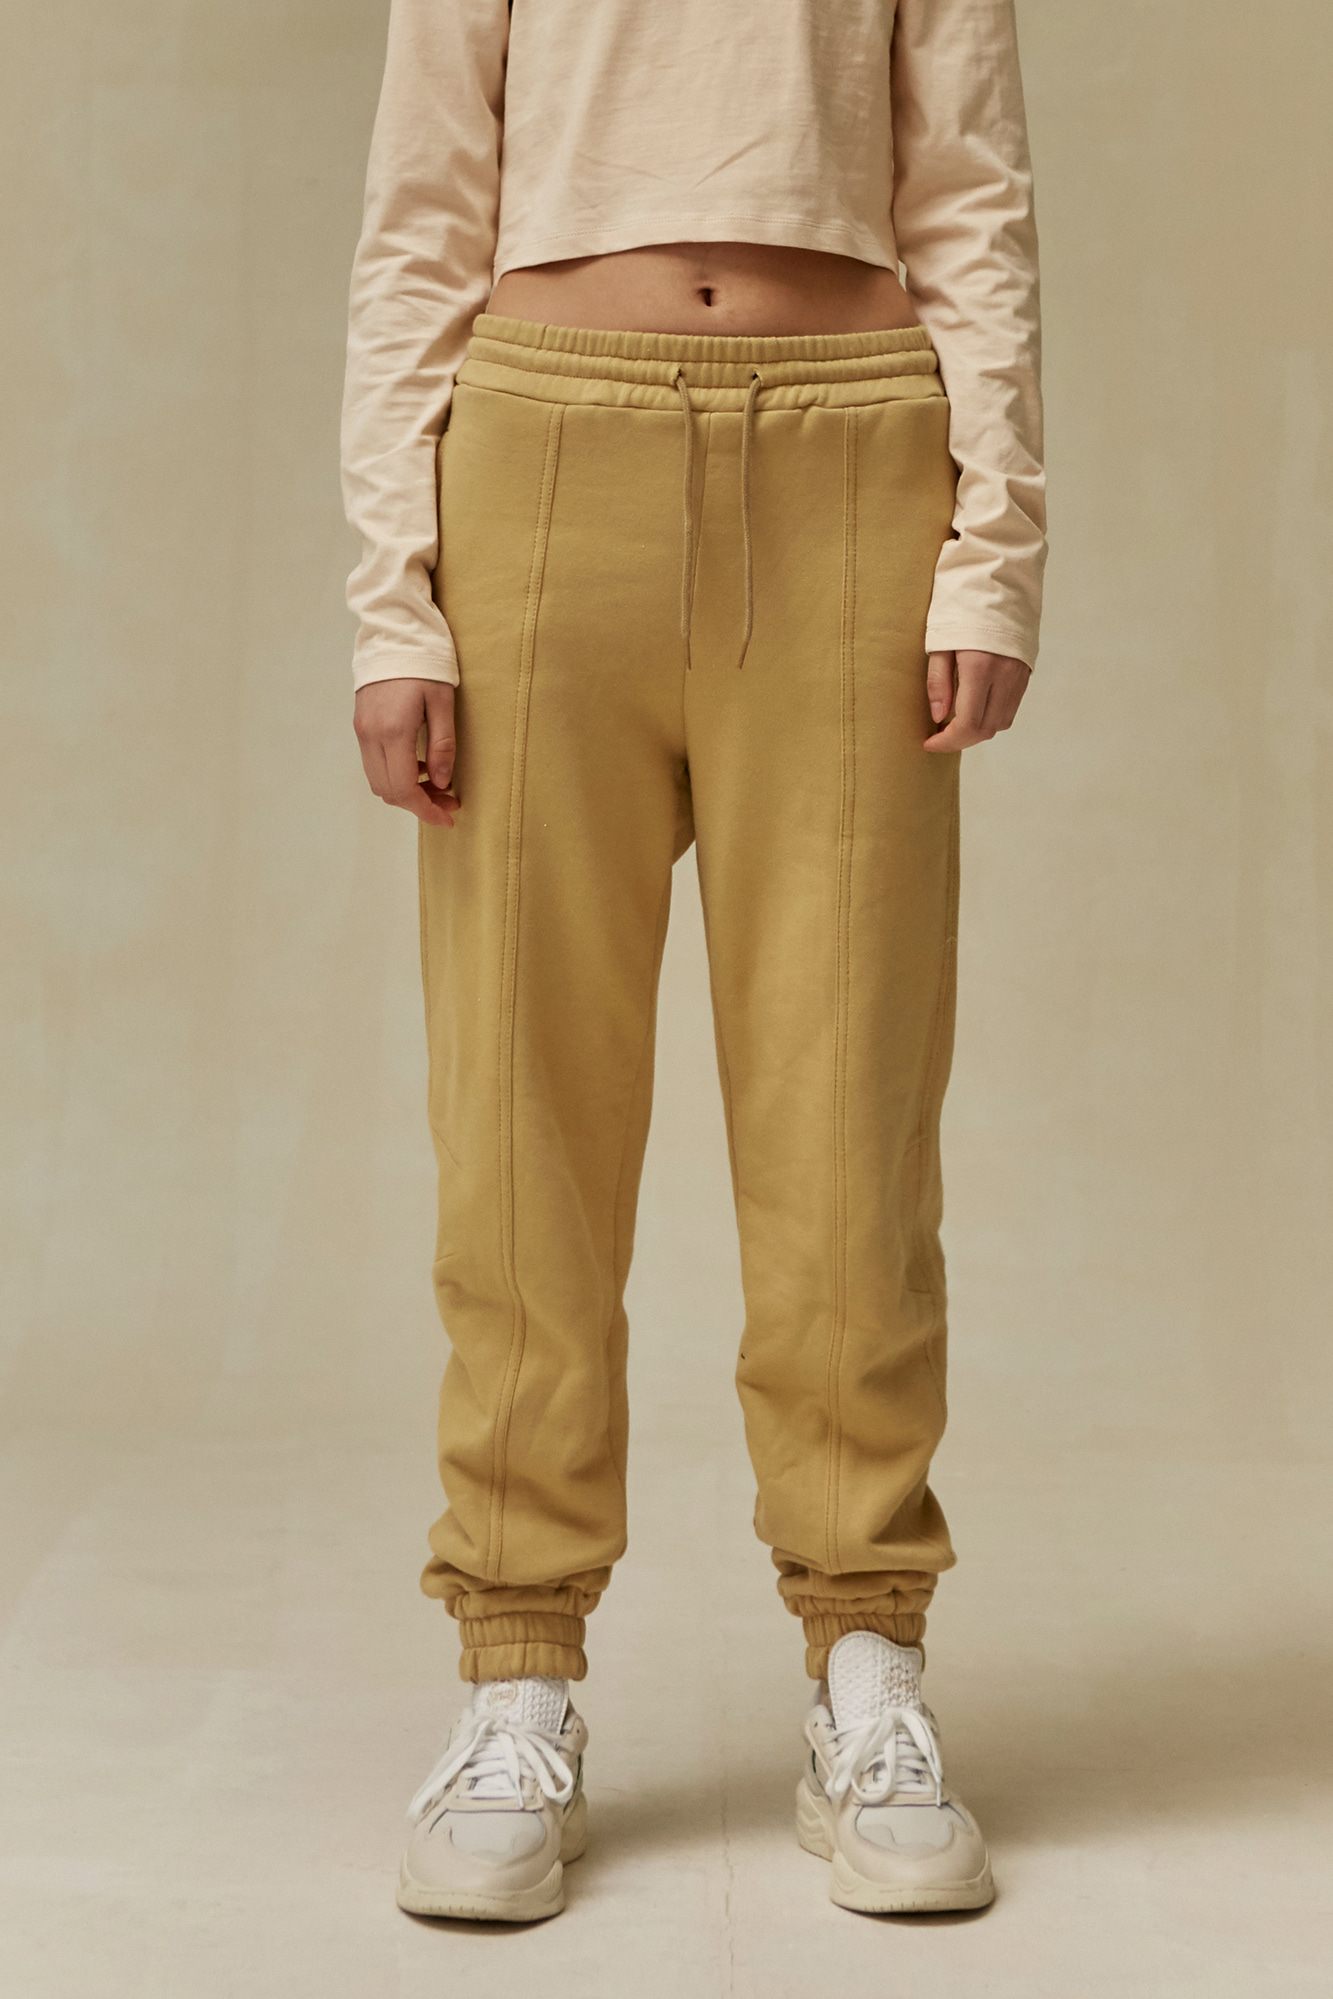 19 WINTER LOCLE JOGGER PANTS - YELLOW